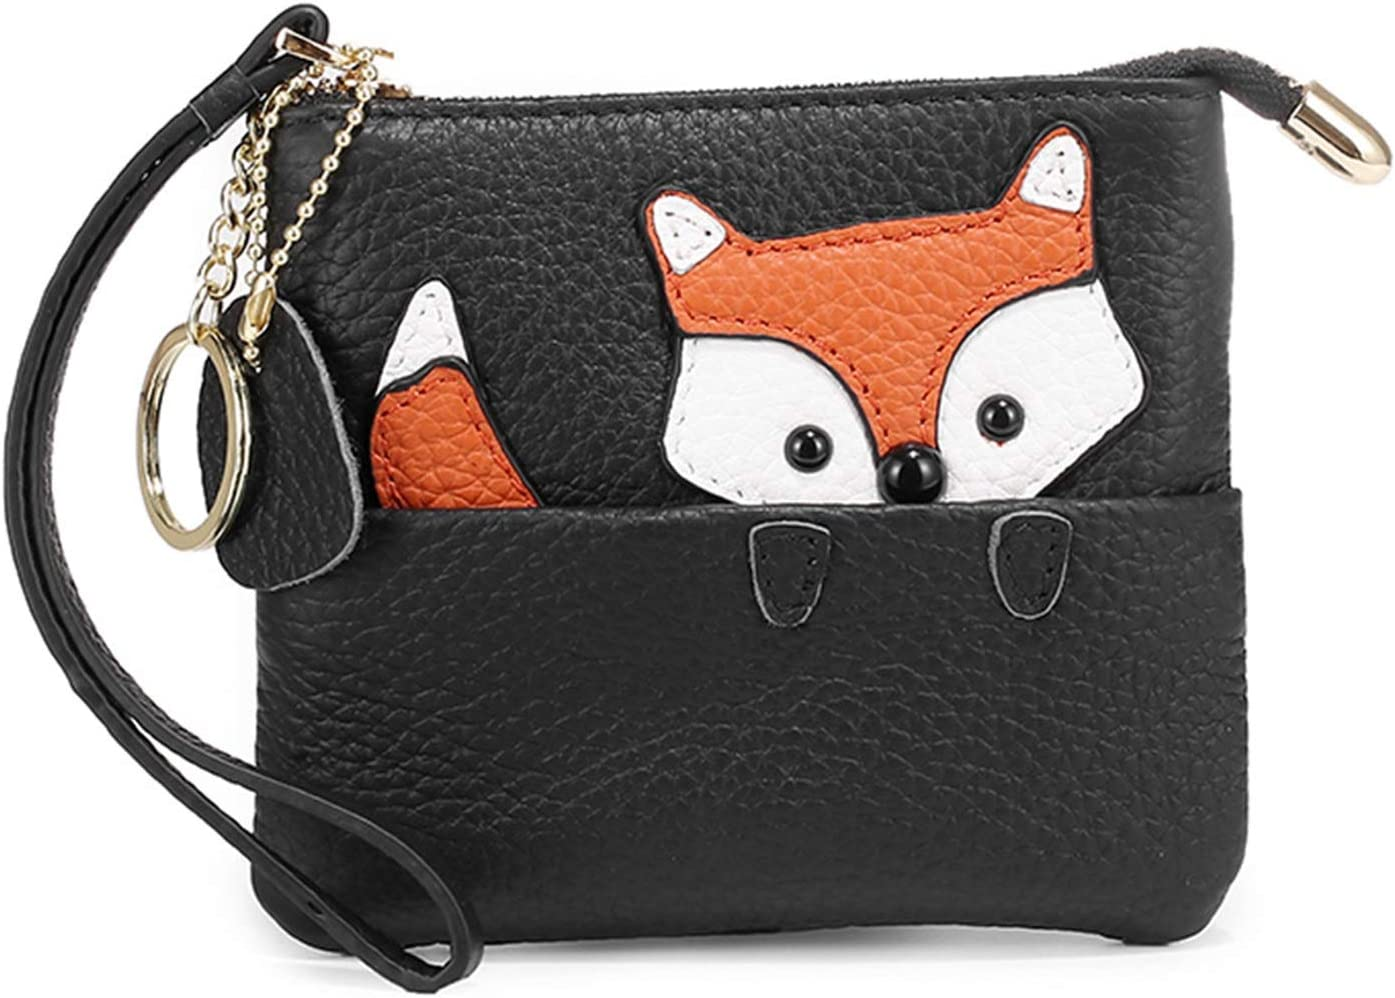 HttKse Coin Purses Wallets Charming Lovely Design Fox Coin Purse Ladies Leather Change Wallet Coin Pouch Key Bag with Key Chain Money Clips Coin Pouches (Color : Black, Size : 13x12x1.5cm)